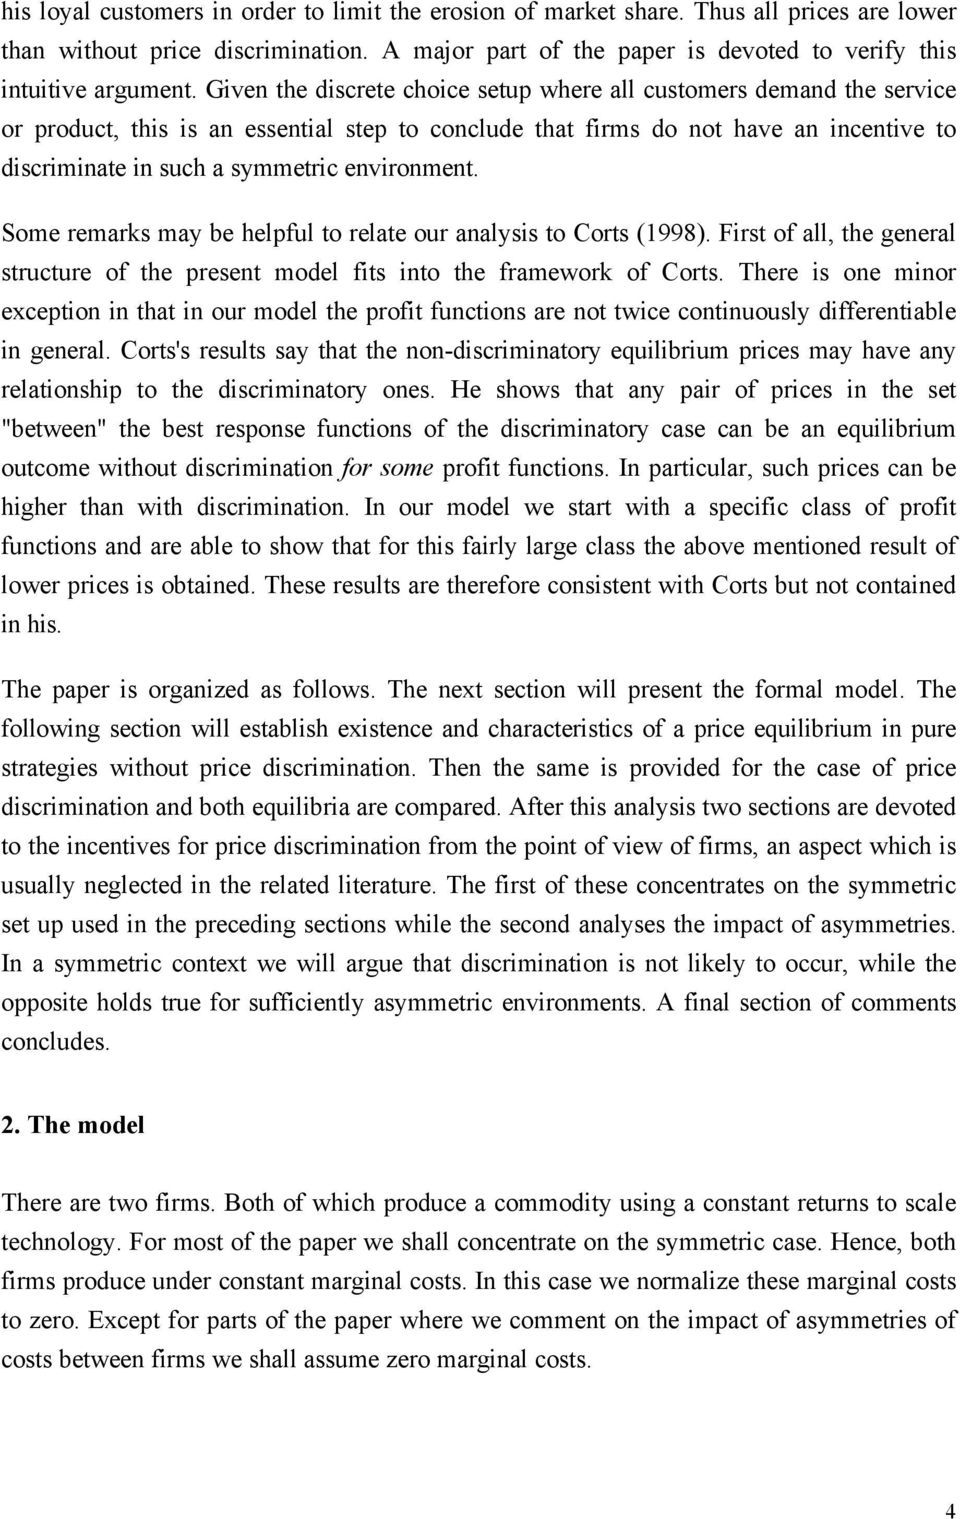 environment. Some remarks may be helpful to relate our analysis to Corts (998). First of all, the general structure of the present model fits into the framework of Corts.